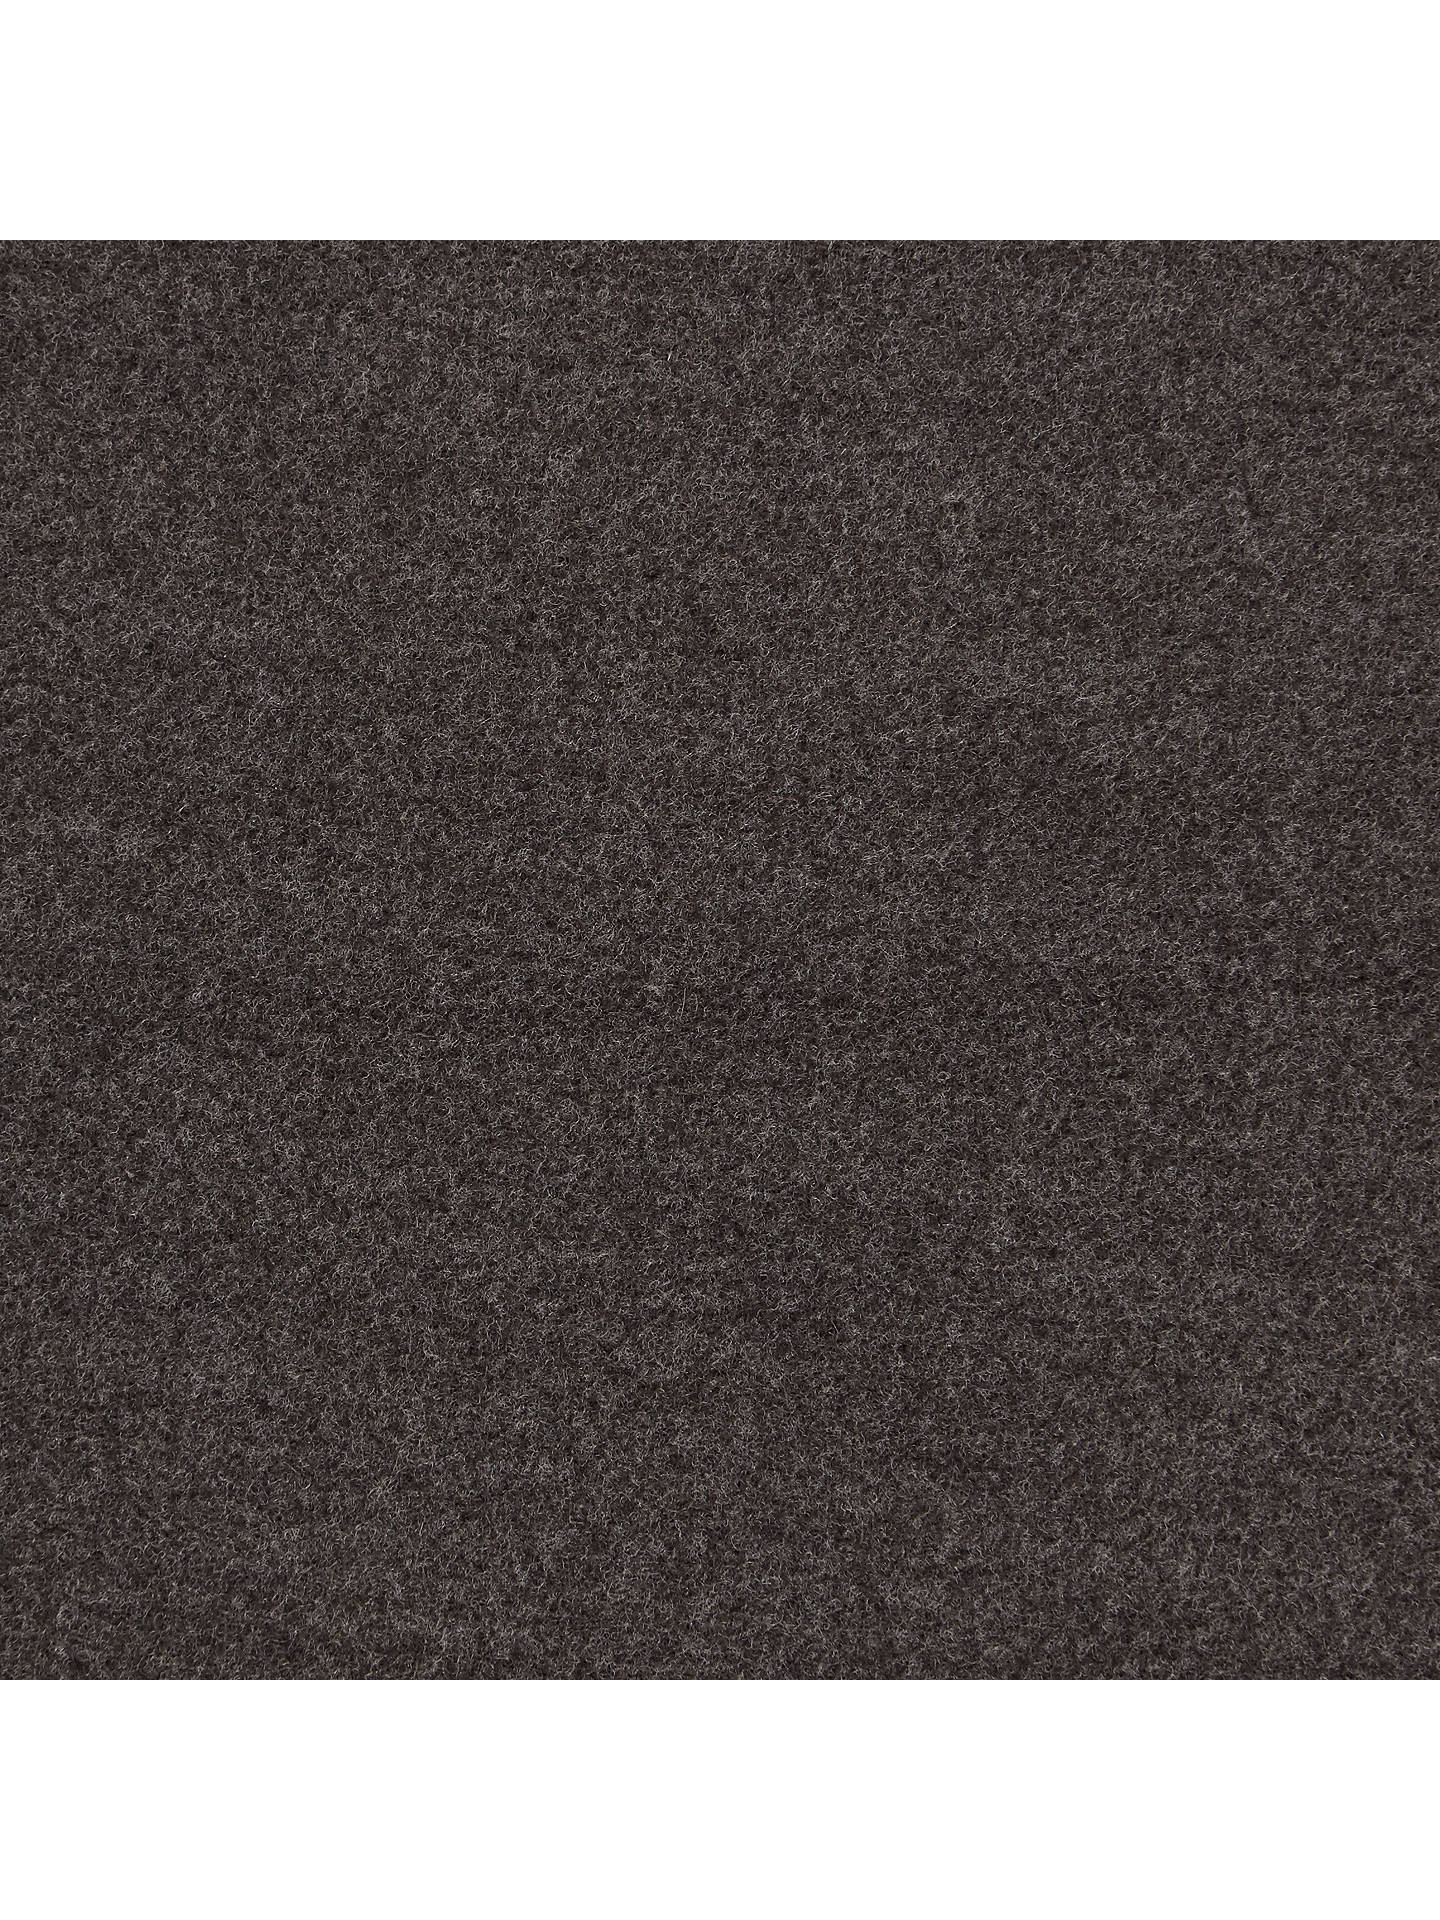 Buy Coat Material Fabric, Charcoal Online at johnlewis.com